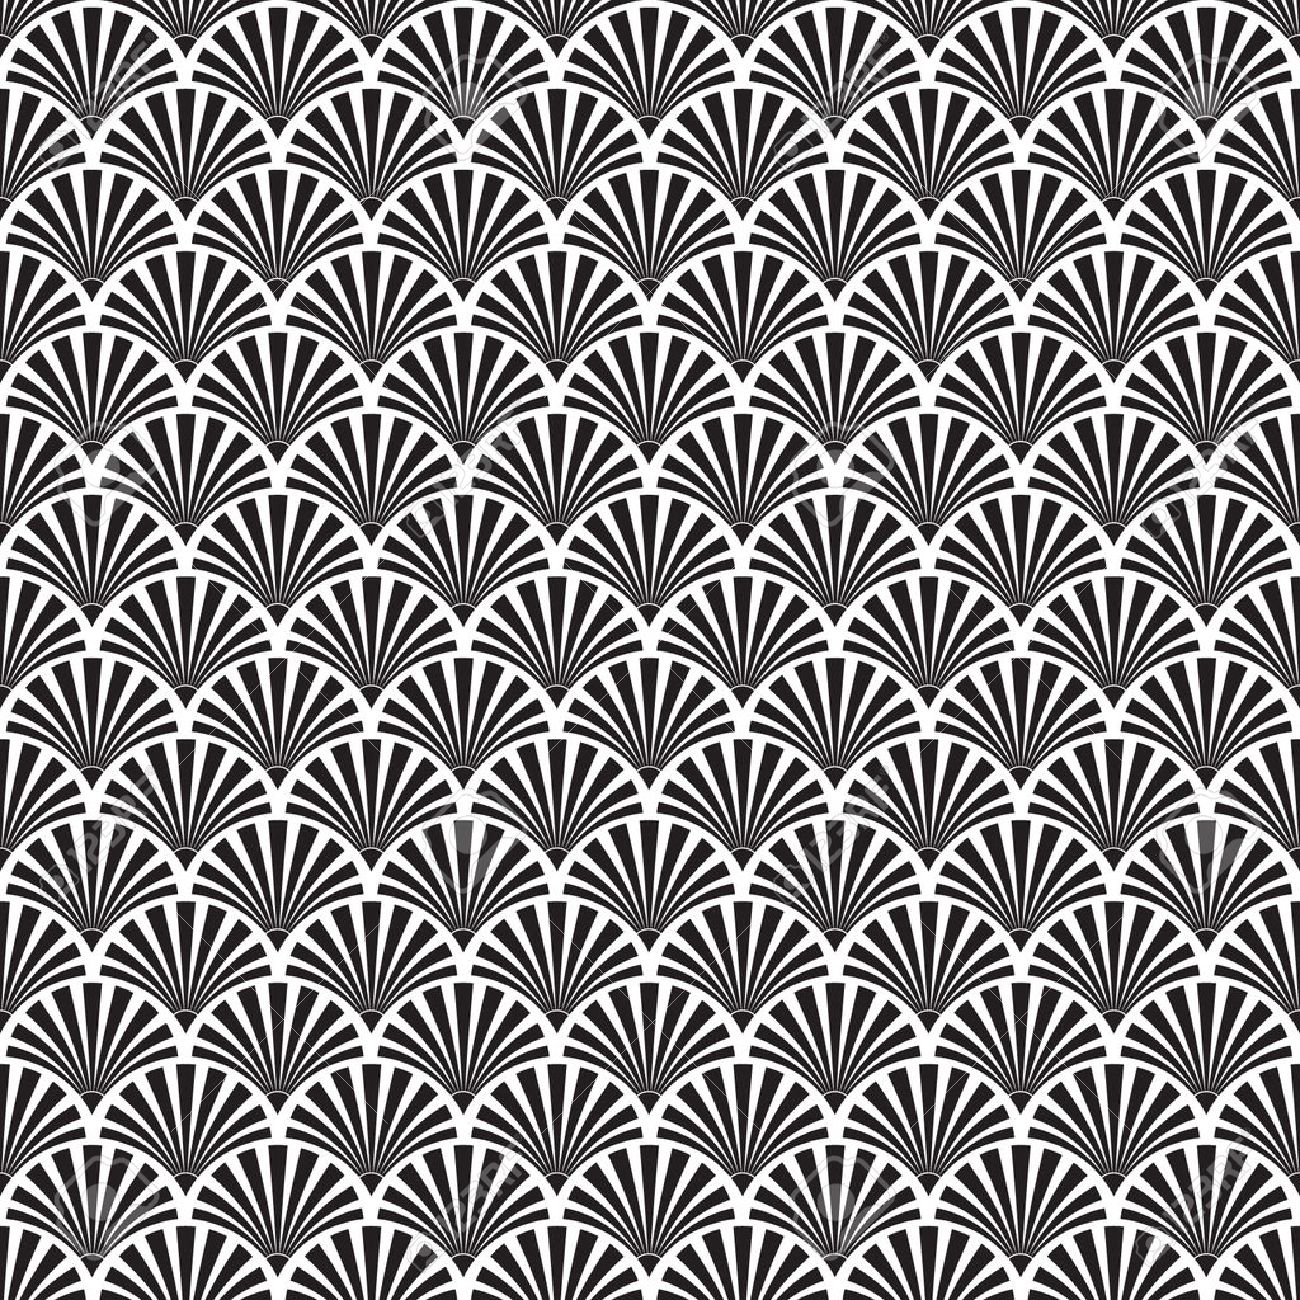 Seamless Art Deco Texture Royalty Free Cliparts, Vectors, And Stock ...